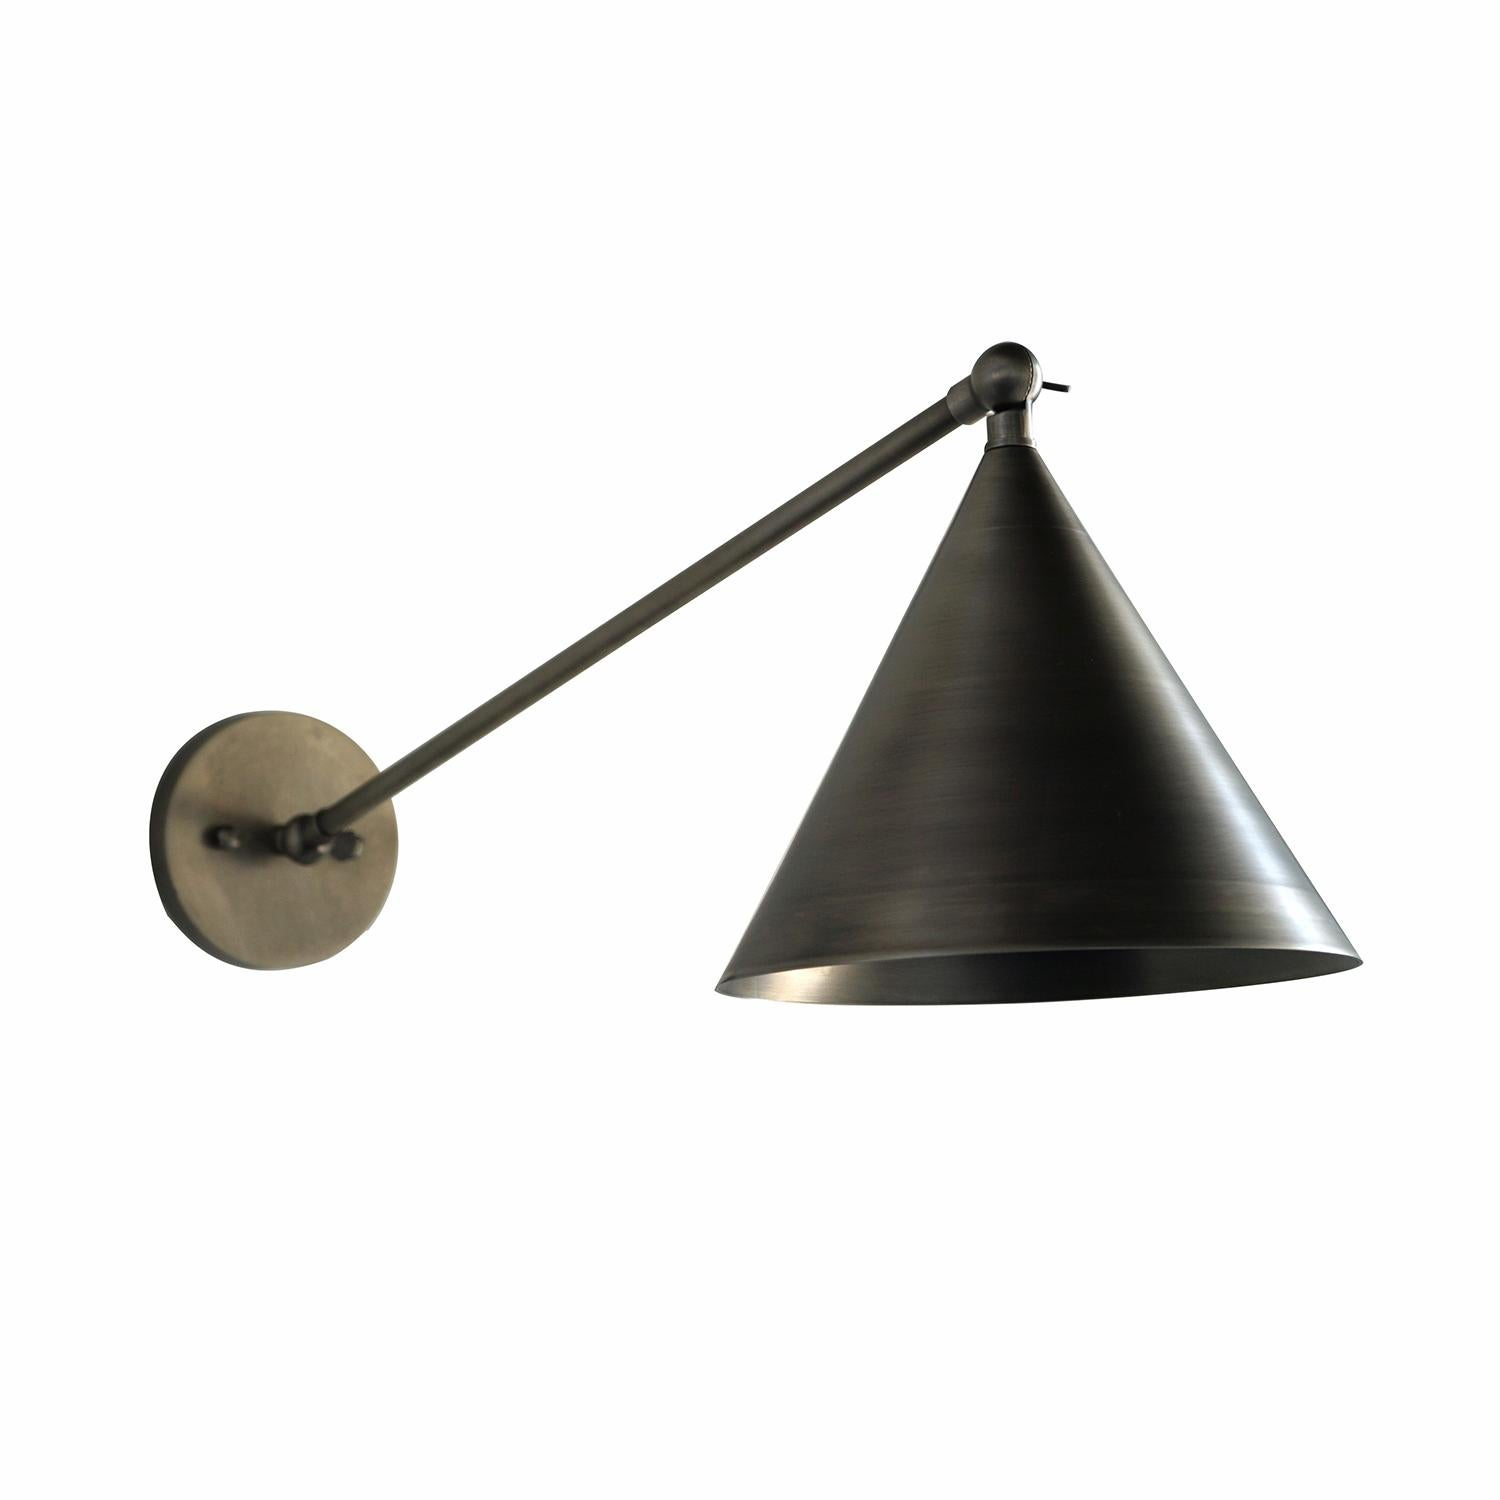 Minimal Cone Shaped Task Light Wall Sconce, Wall Lantern, Pewter